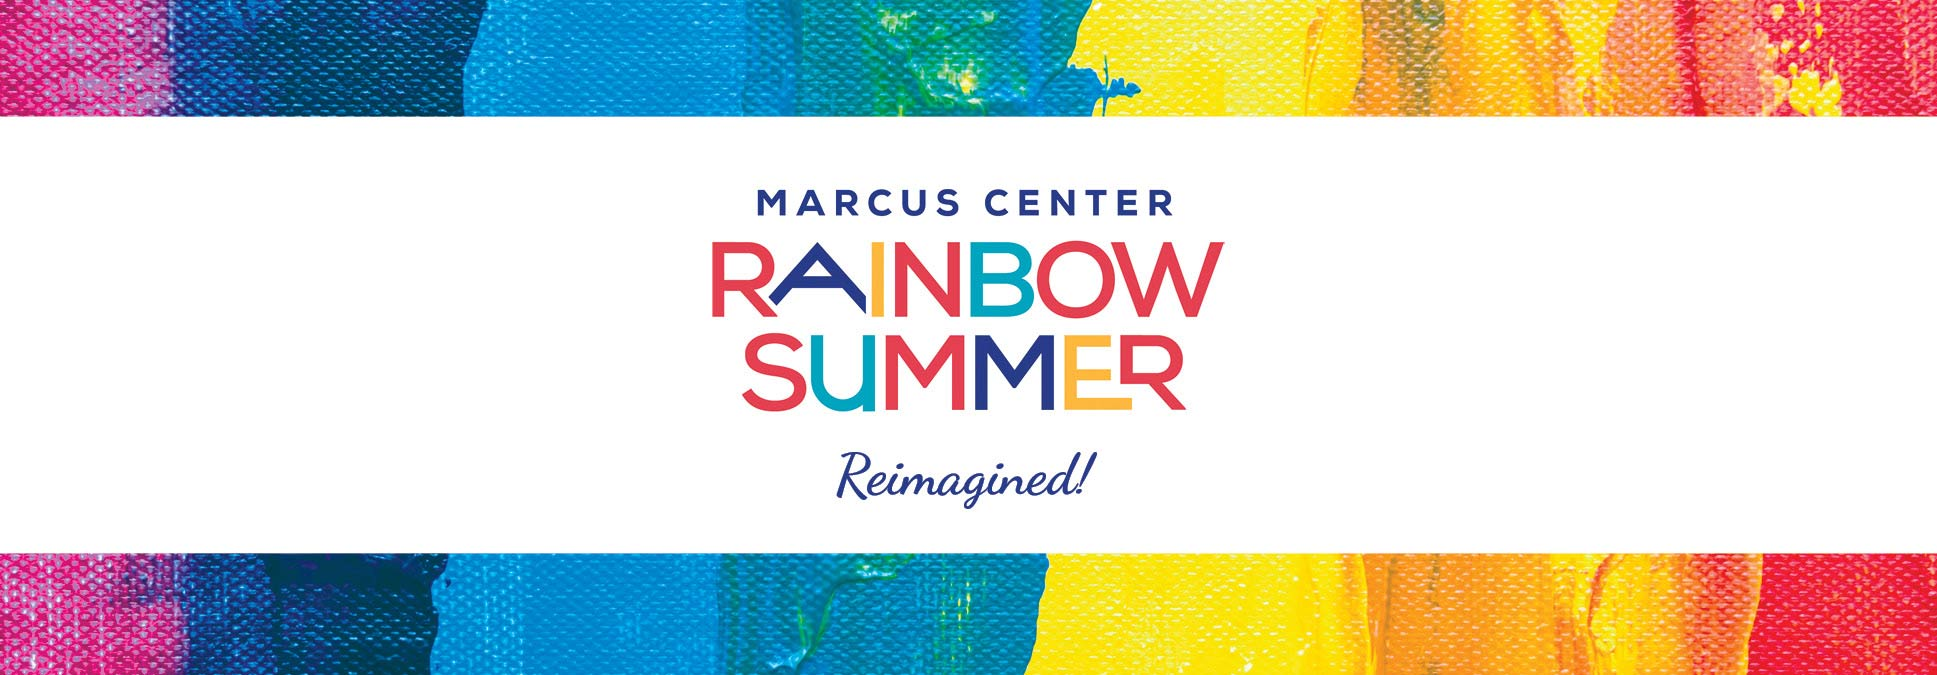 Rainbow Summer Kids Events at the Marcus Center in Milwaukee